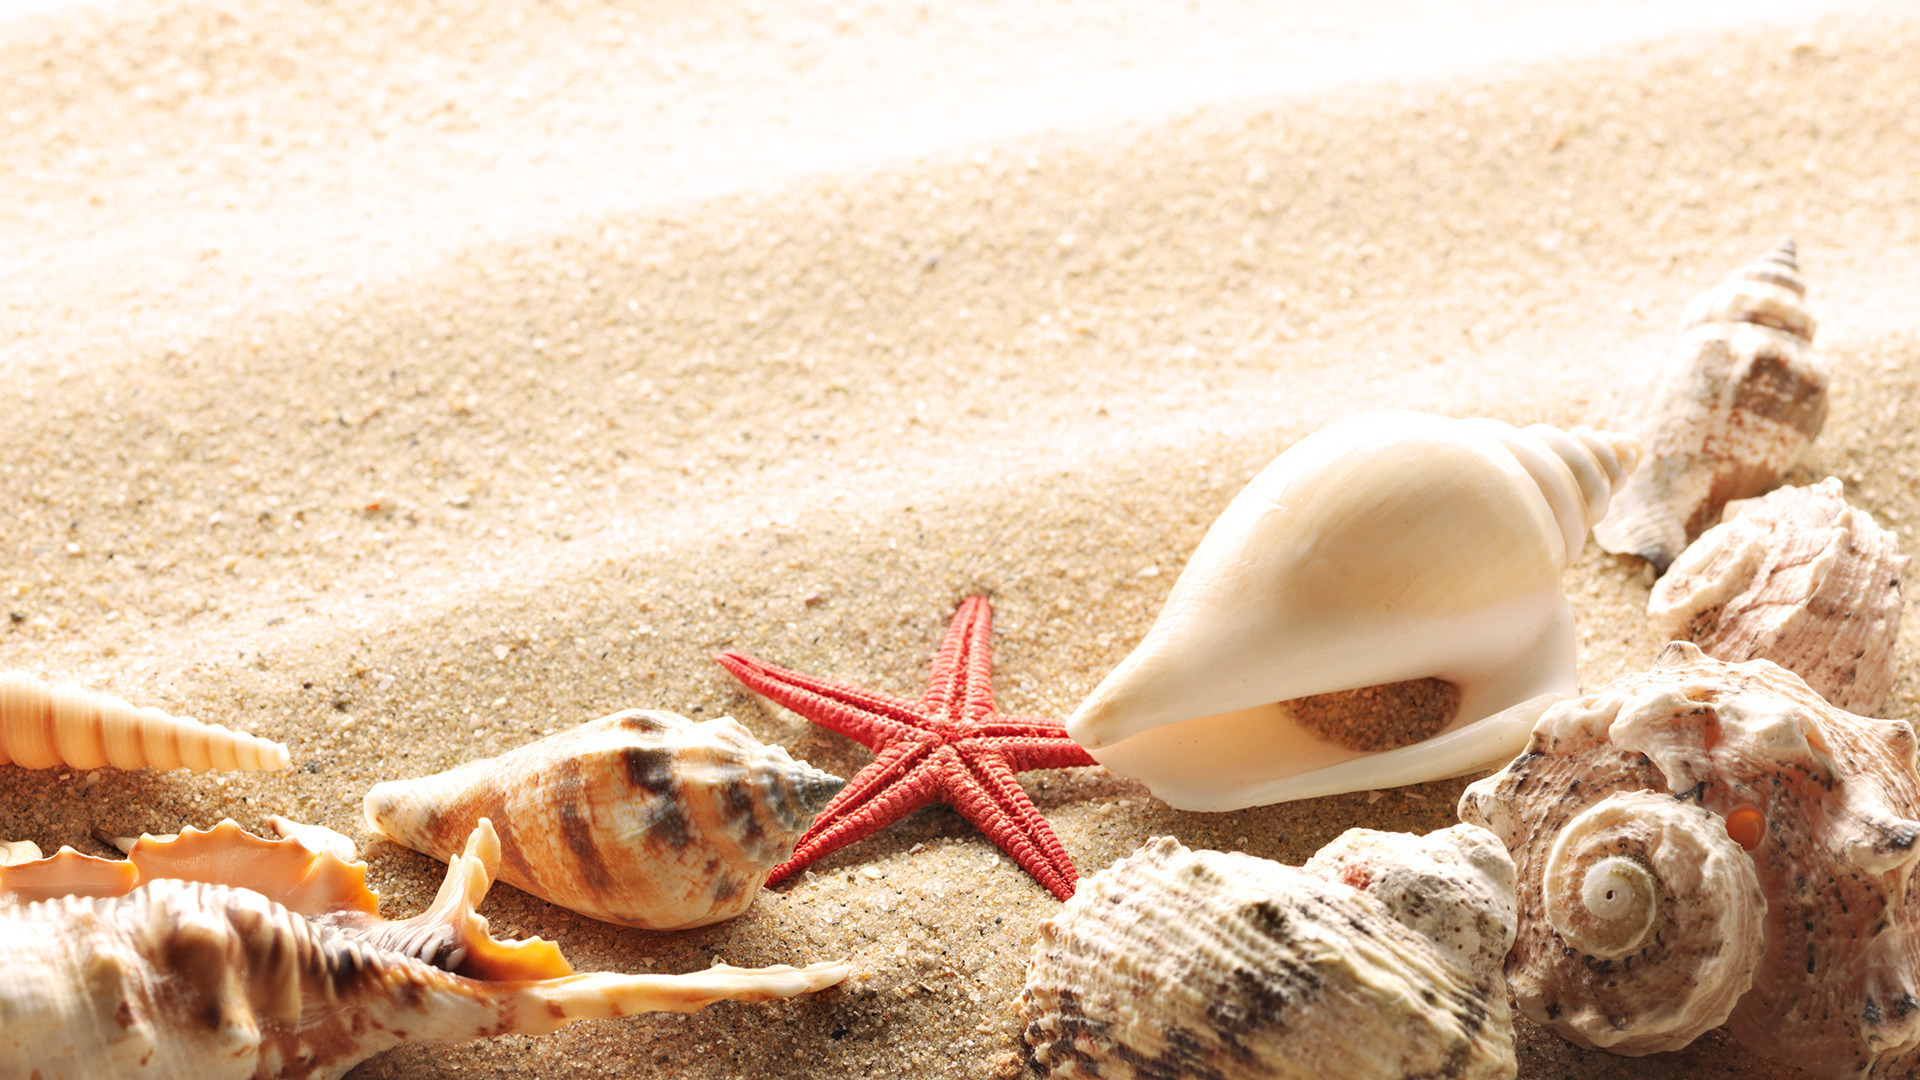 Wallpaper-seashells-summer-beach-sand-sun-theme-macro-download-132777-1920x1080.